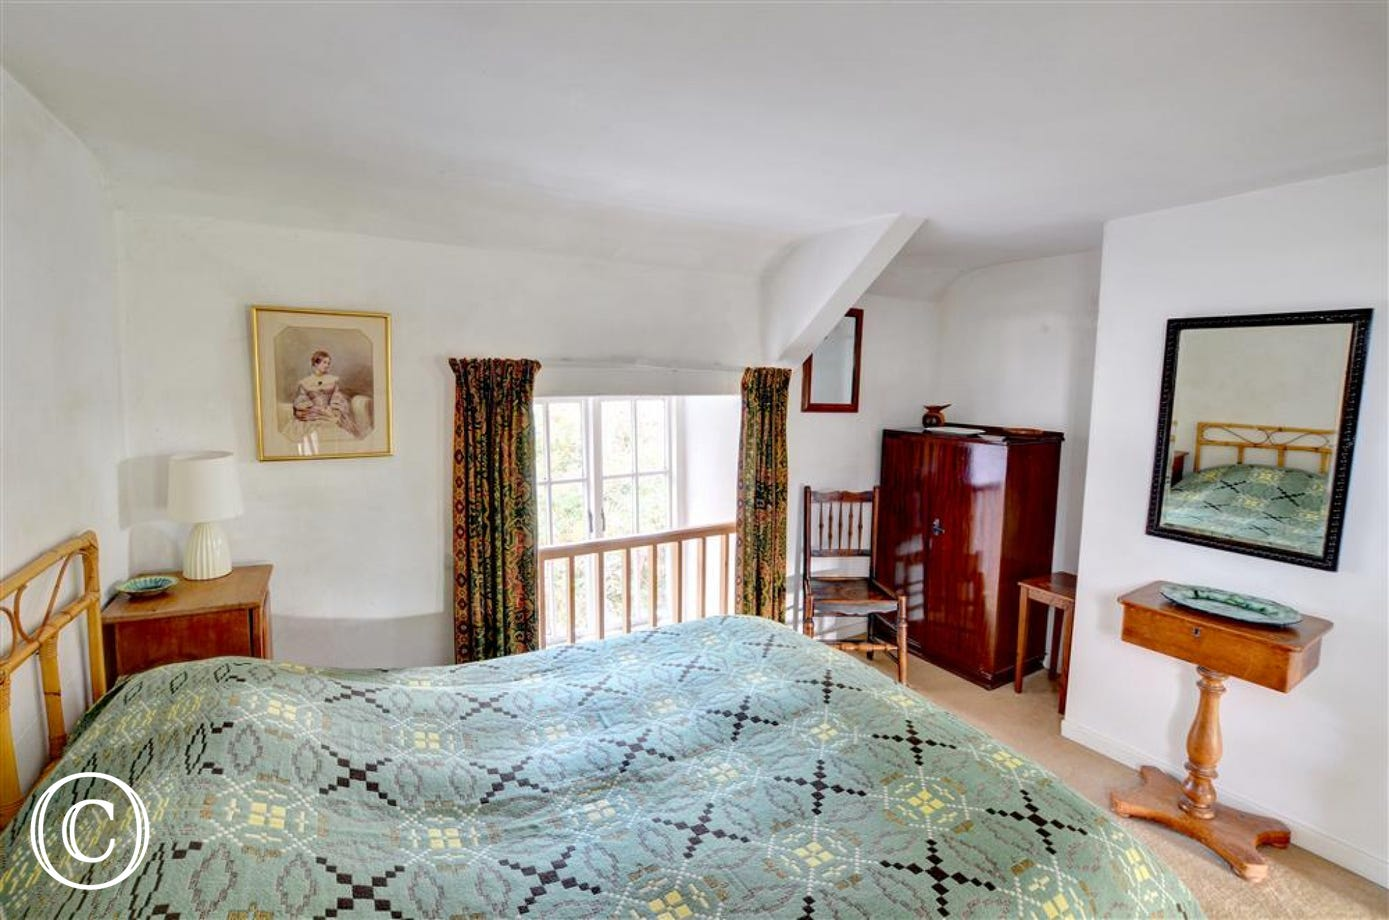 The double bedroom has traditional Welsh wool blanket and traditional furniture